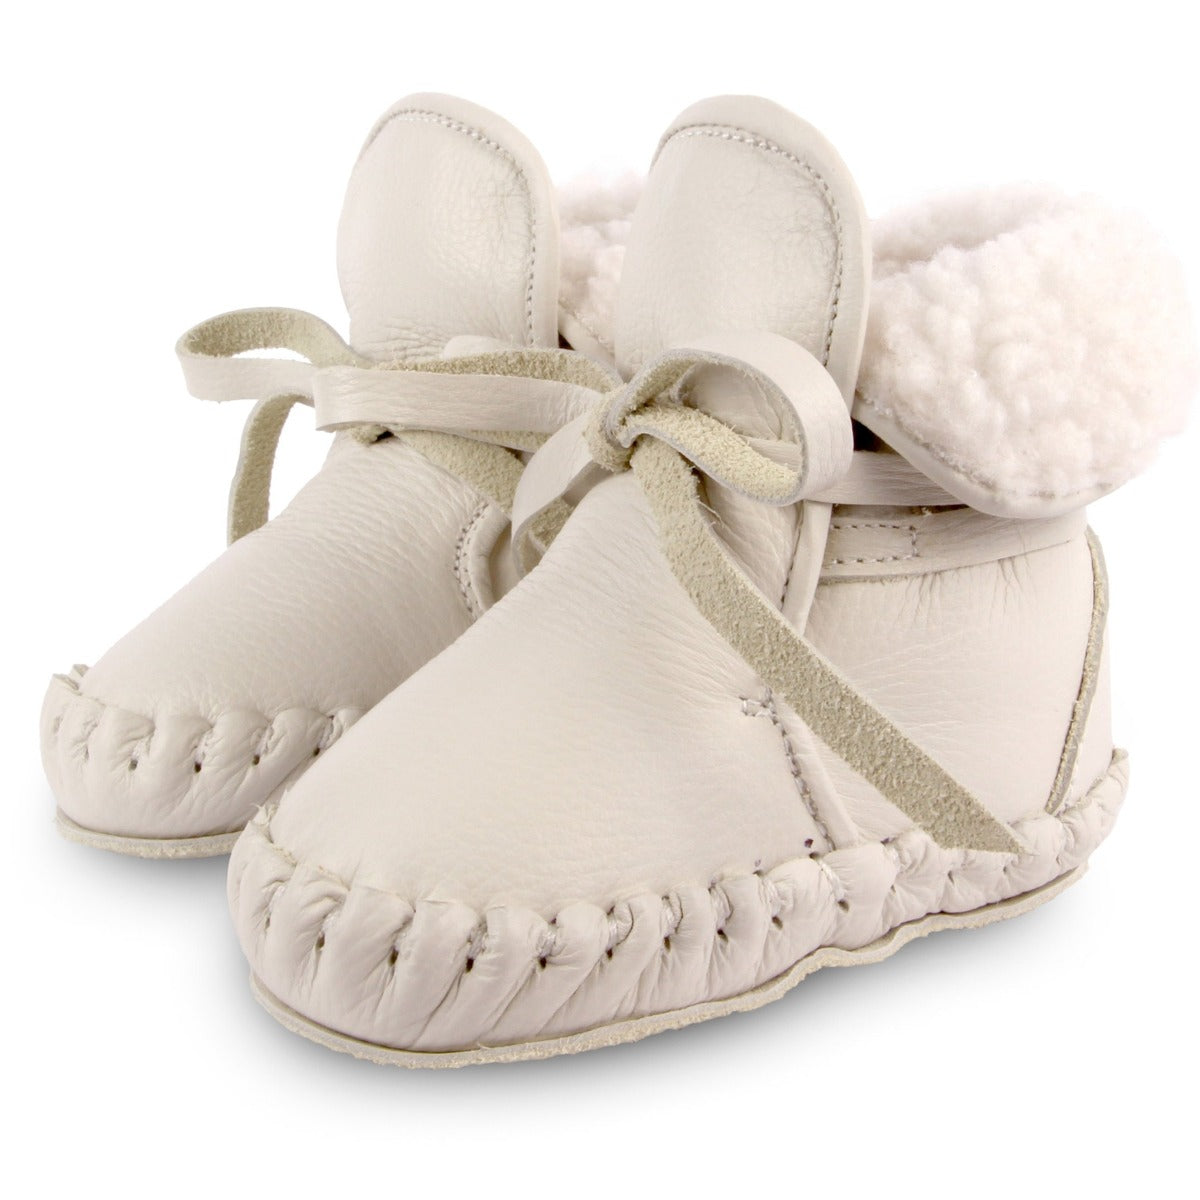 US stockist of Donsje's gender neutral Jaya baby shoe in off white leather.  Handmade, moccassin style shoe, lined and with laces.